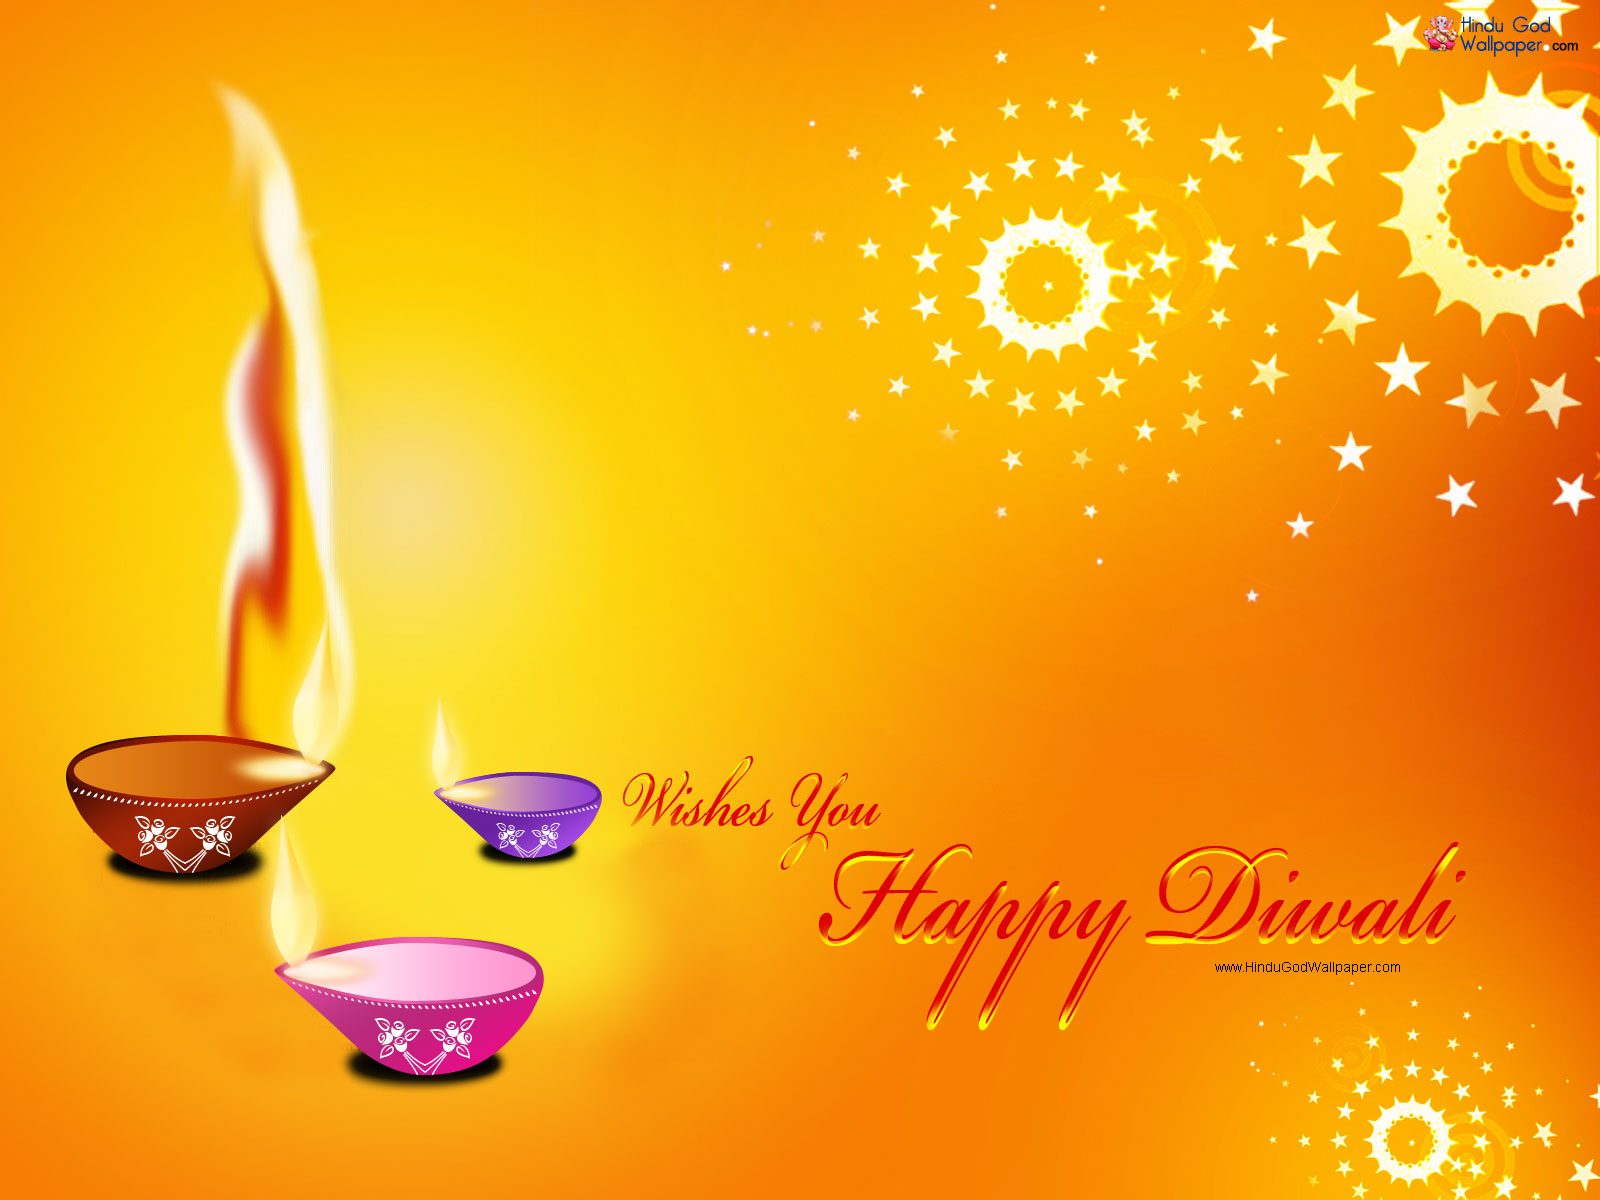 diwali essay english children happy diwali poster drawing diwali drwaing poster happy diwali poster drawing diwali drwaing poster